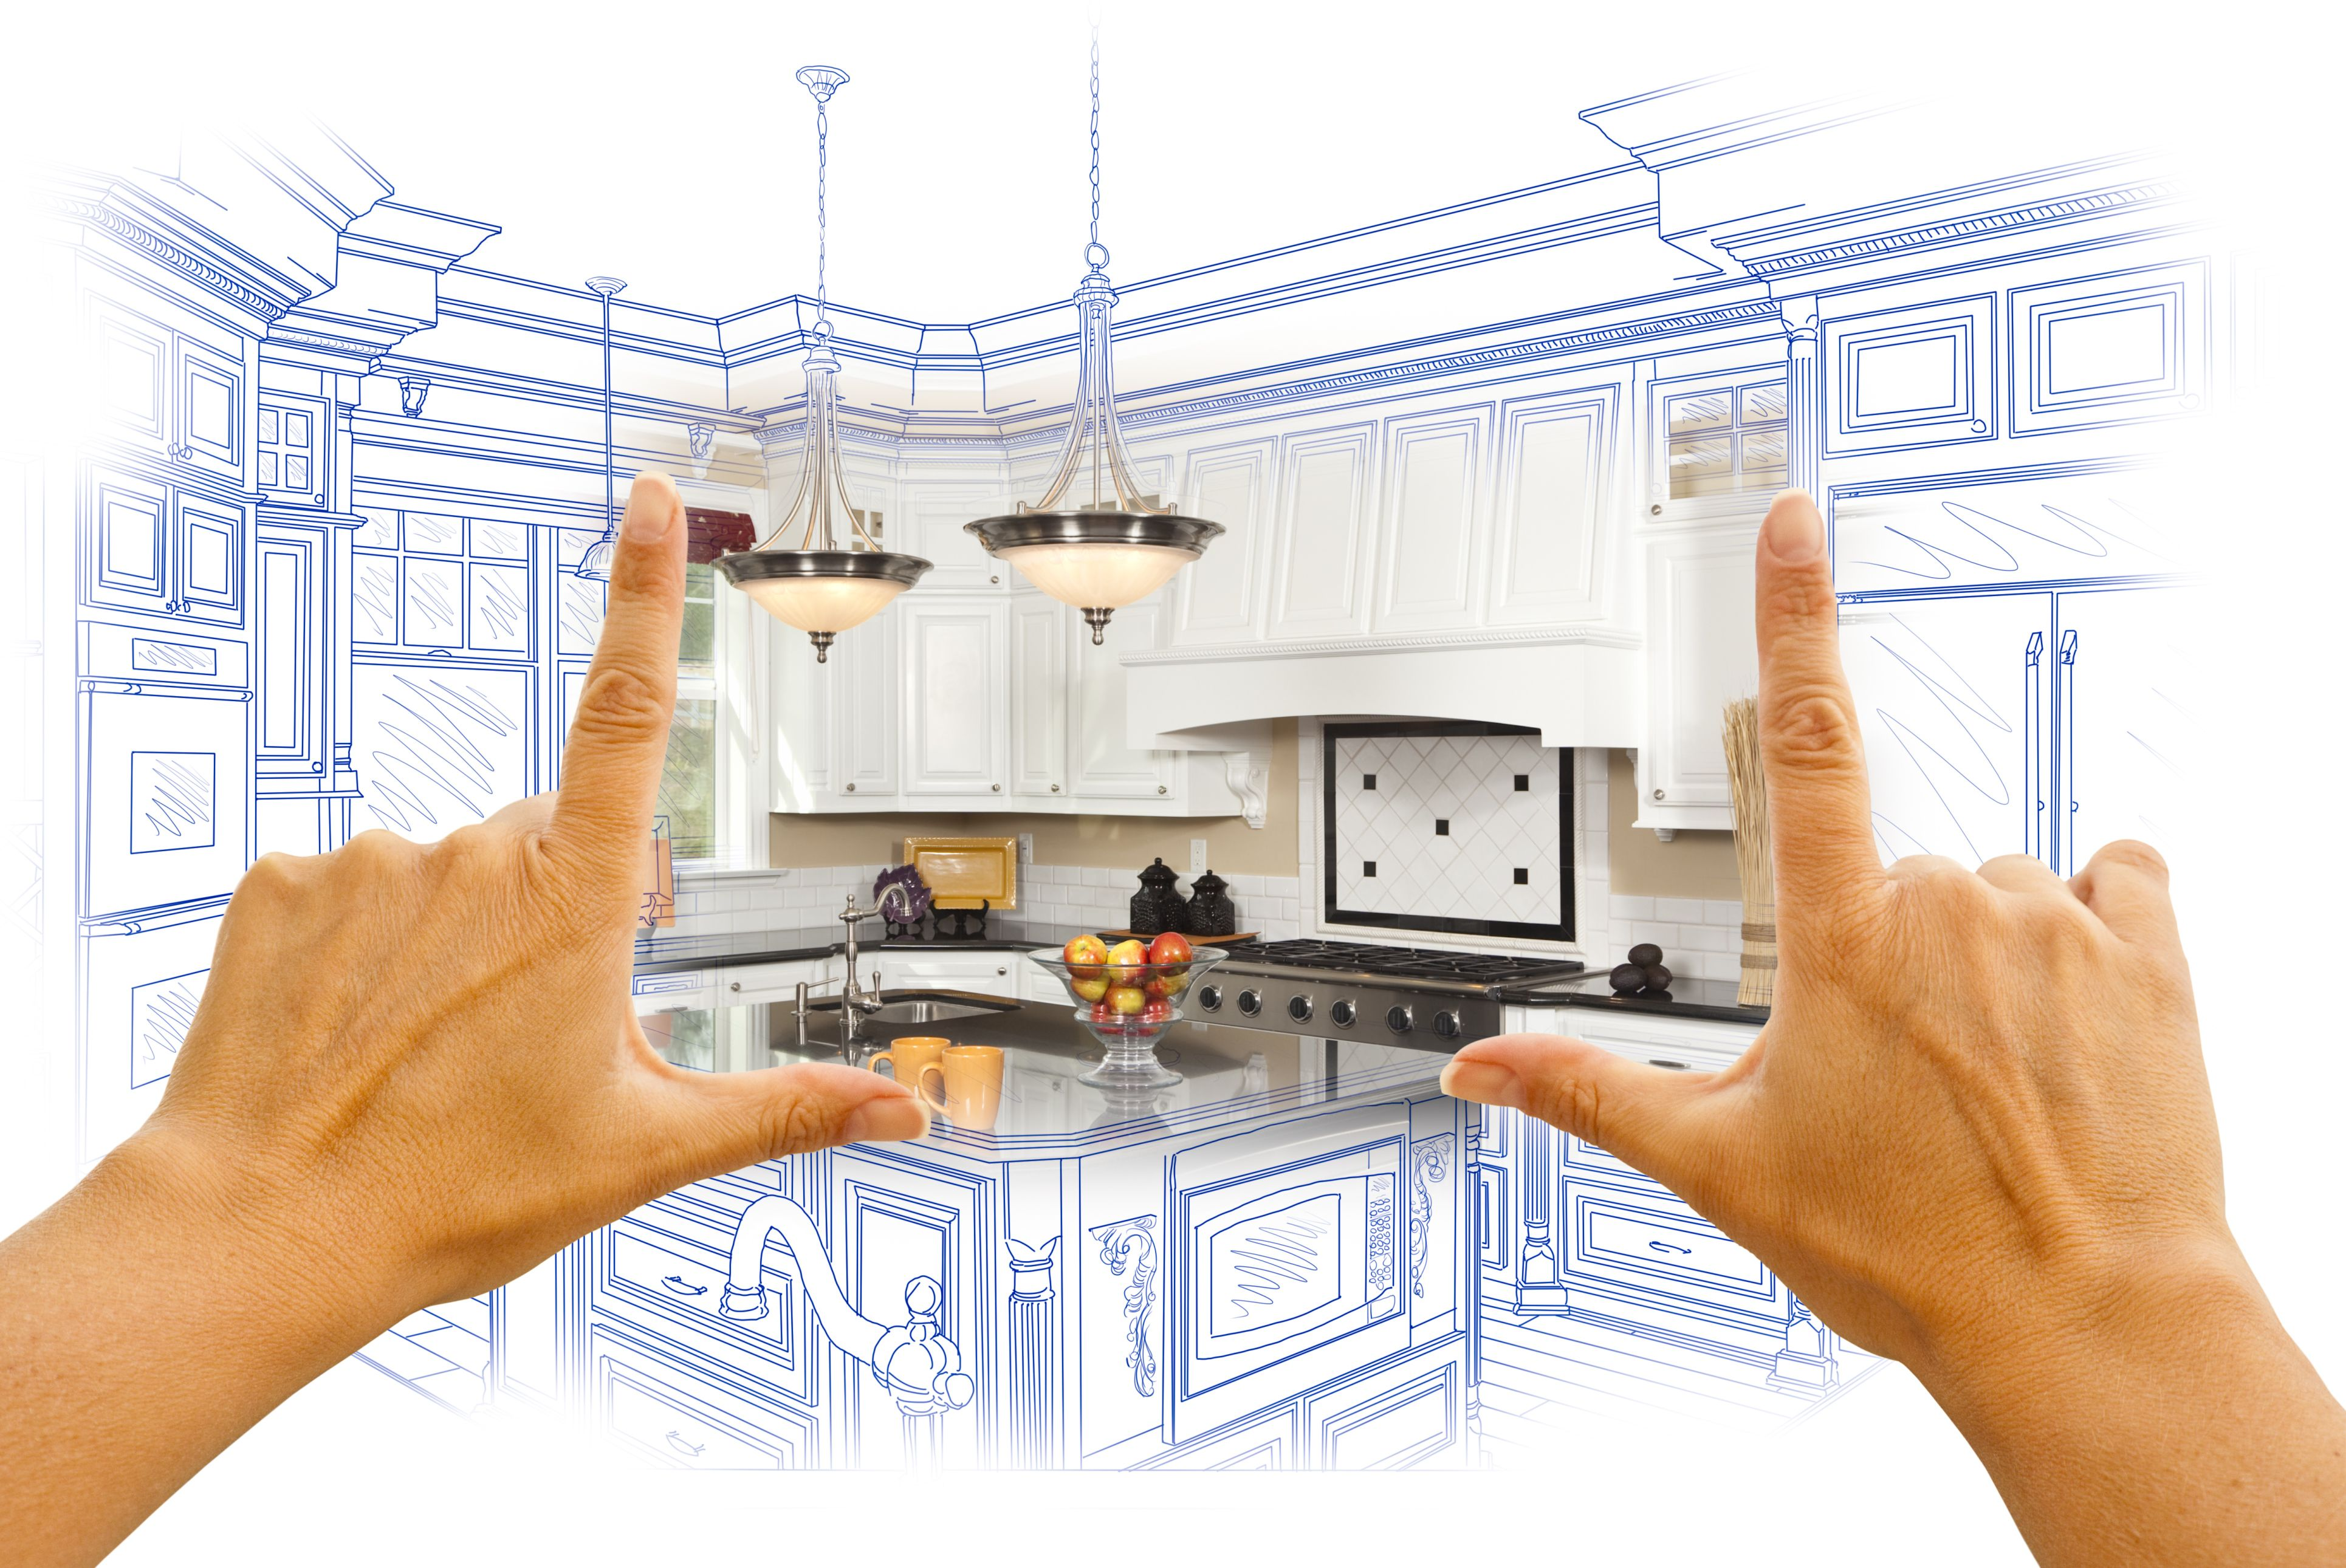 Five Simple Kitchen Remodeling Tips for Your Home: 1. Set a budget ...